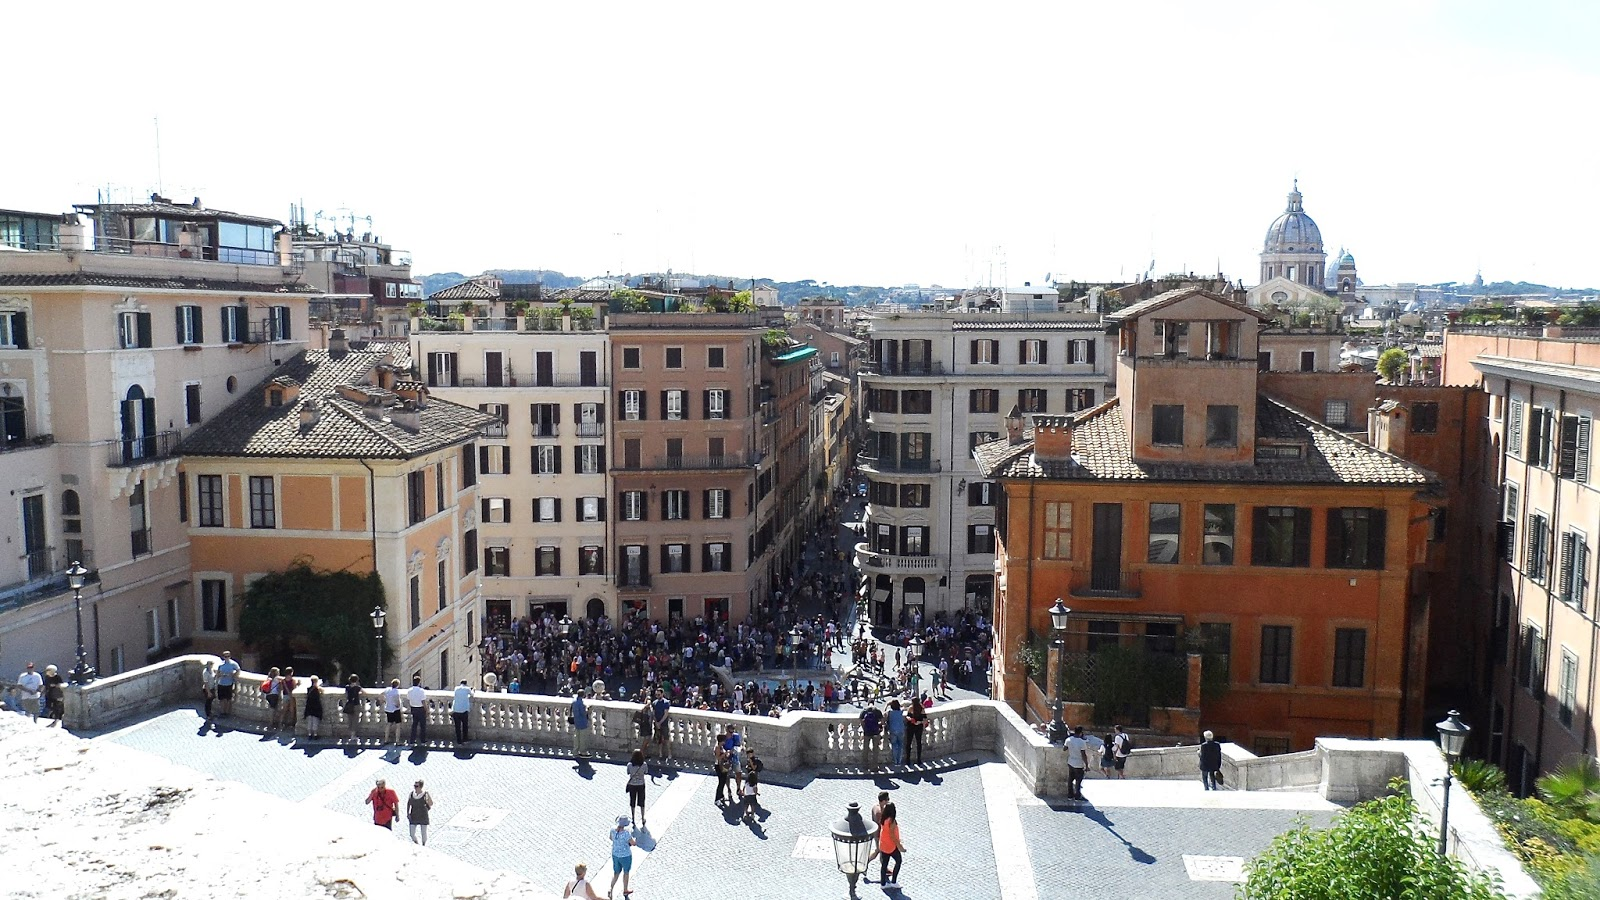 The view from the top of the Spanish Steps